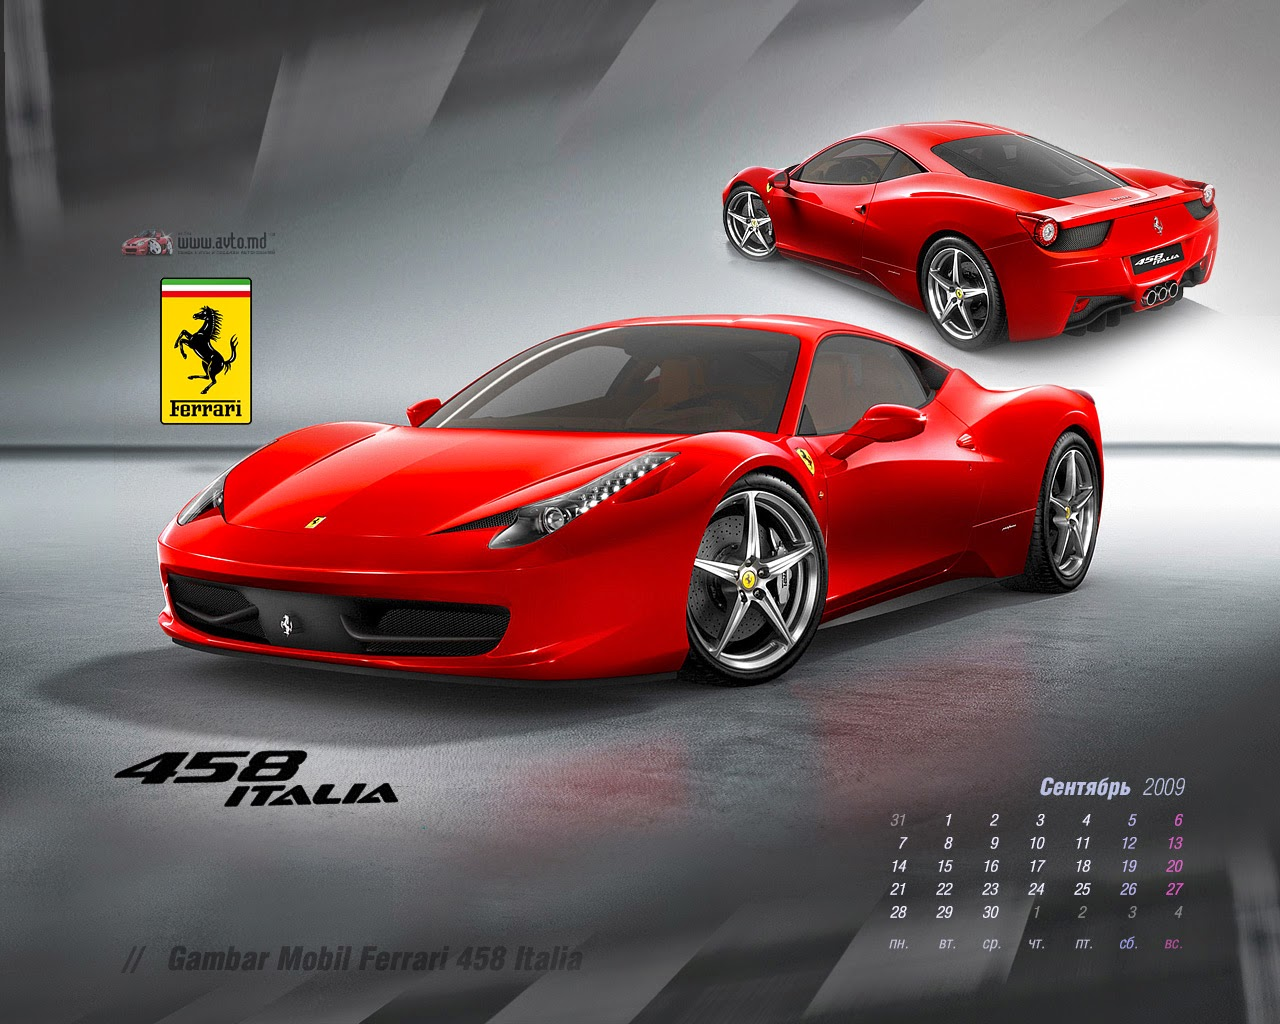 Gambar Mobil Ferrari Worlds Automotive Cars